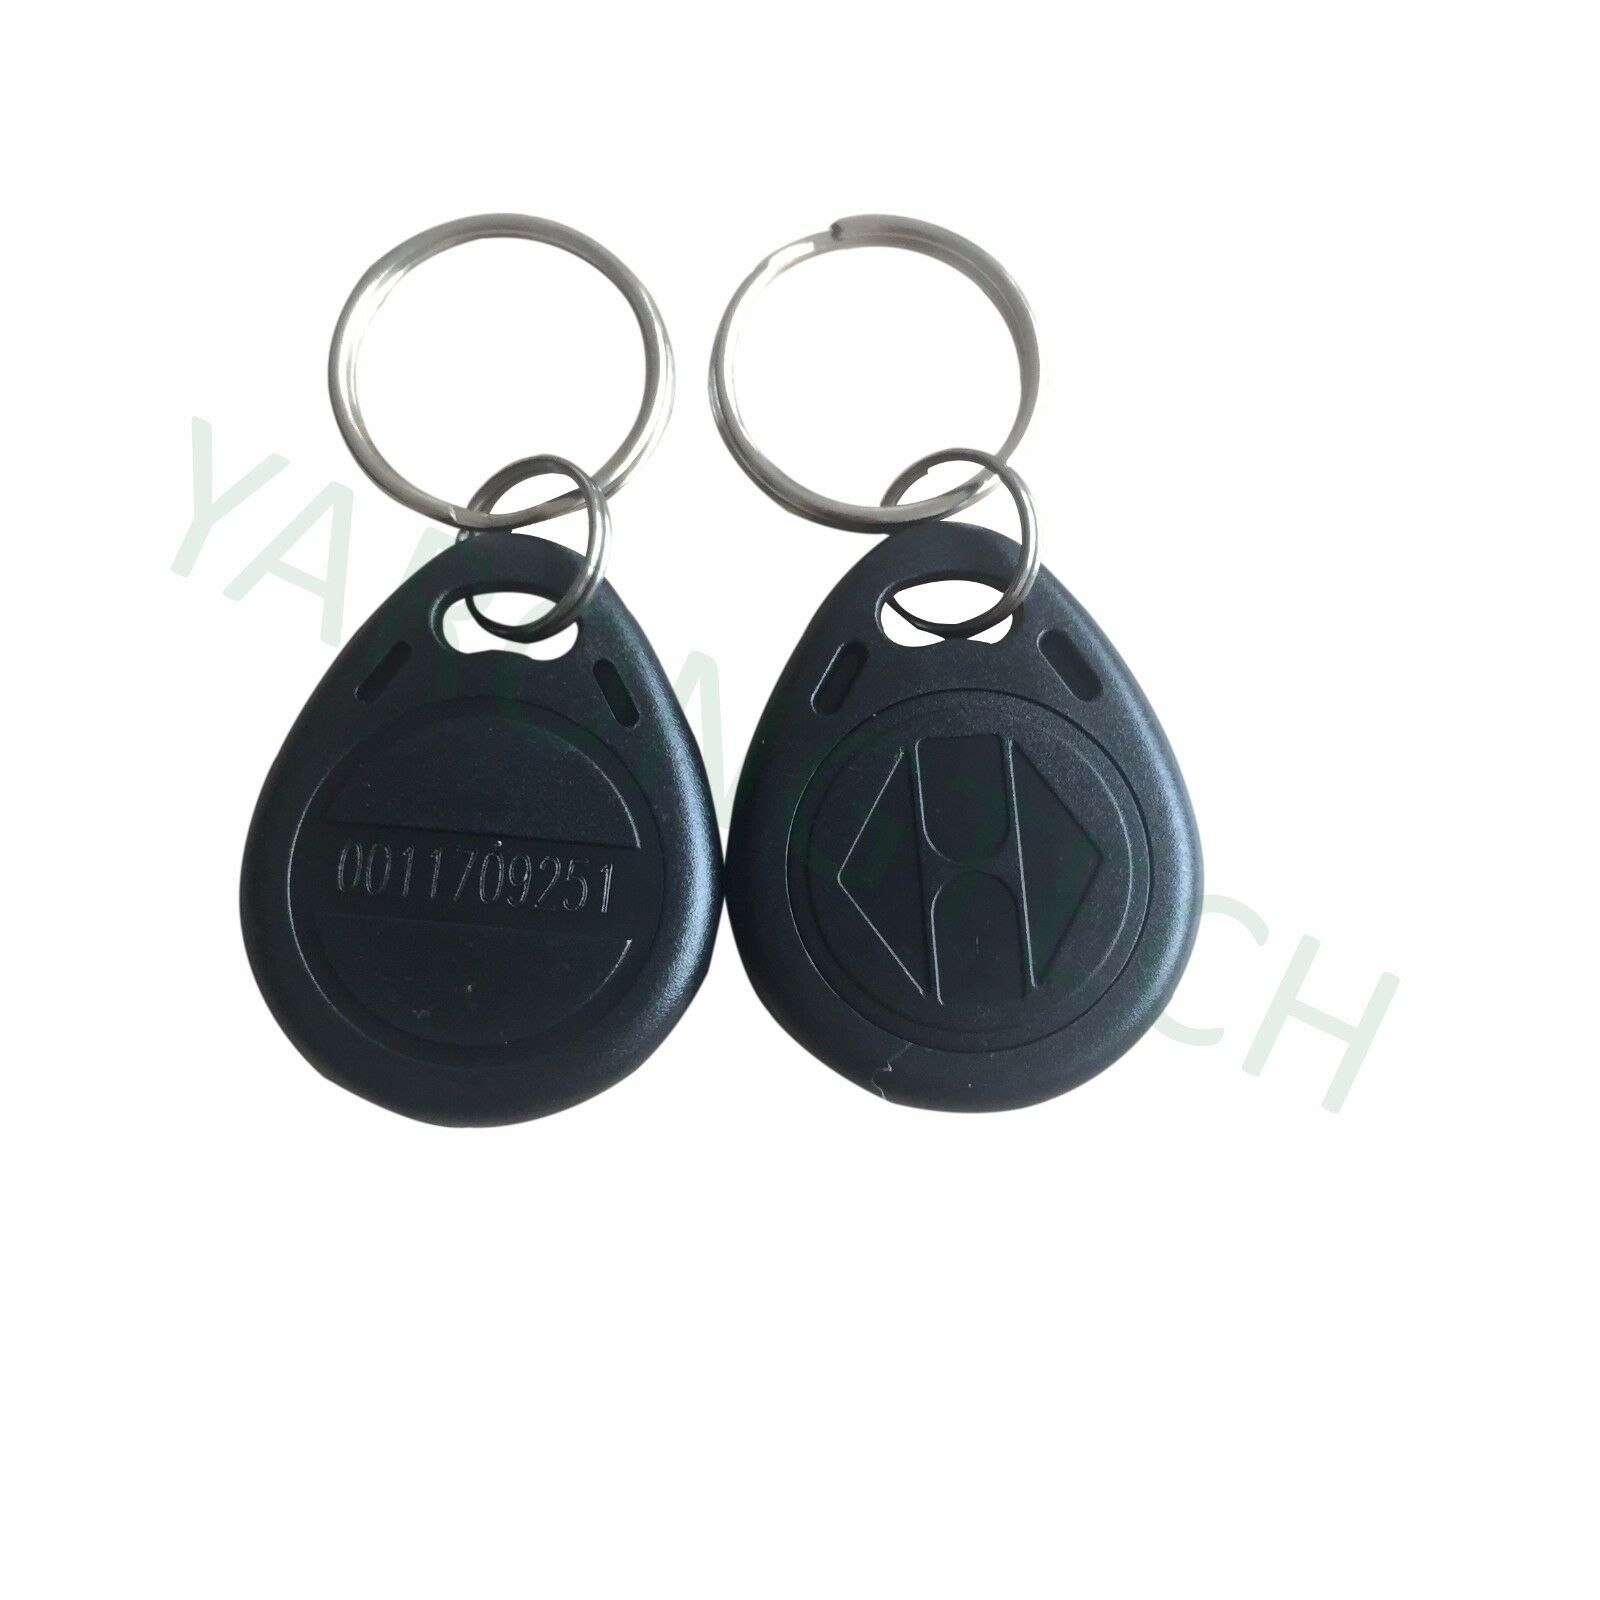 RFID Tag 125khz EM4100 TK4100 Black ABS Waterproof Keyfob -10pcs